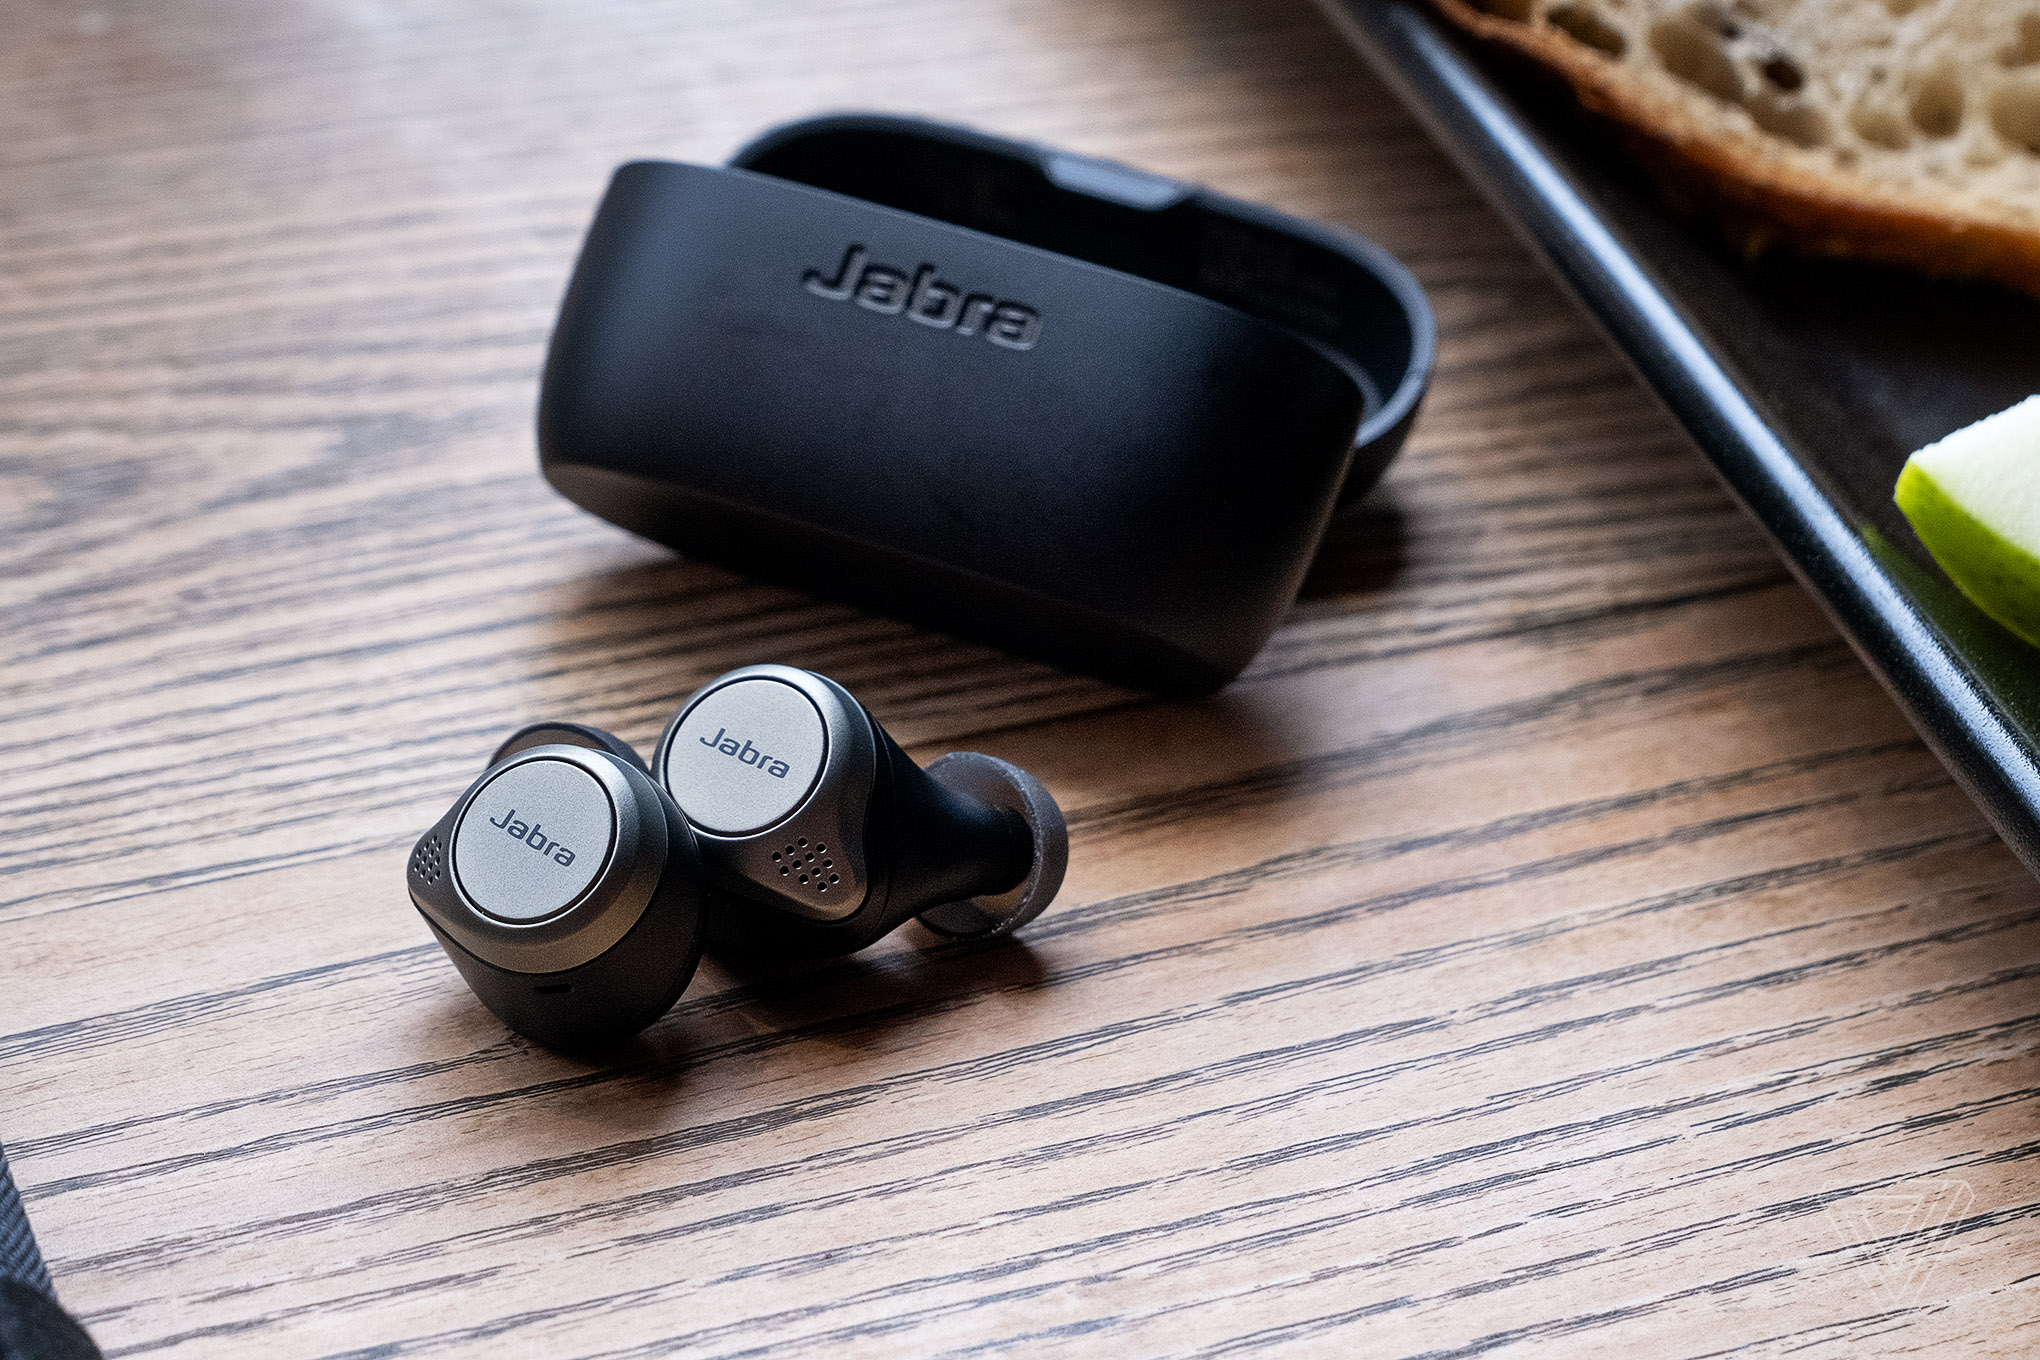 Jabra's Elite 75t, the best wireless earbuds for multitasking, pictured on a table.